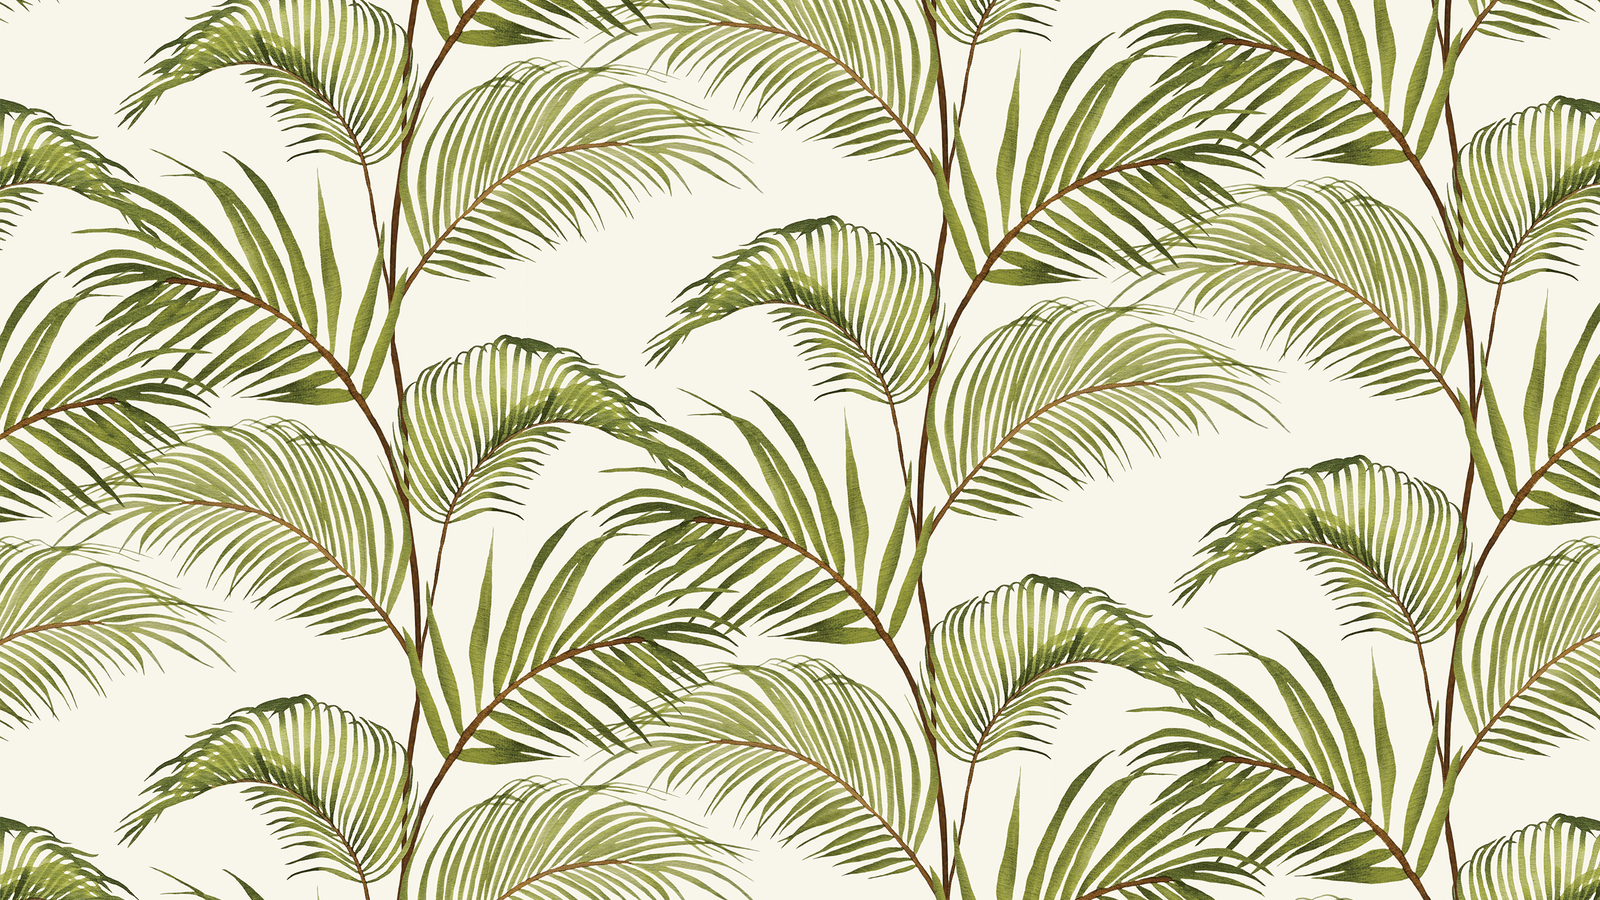 Lick x Belinda Bayley Jungle 03 white and green palm leaf wallpaper